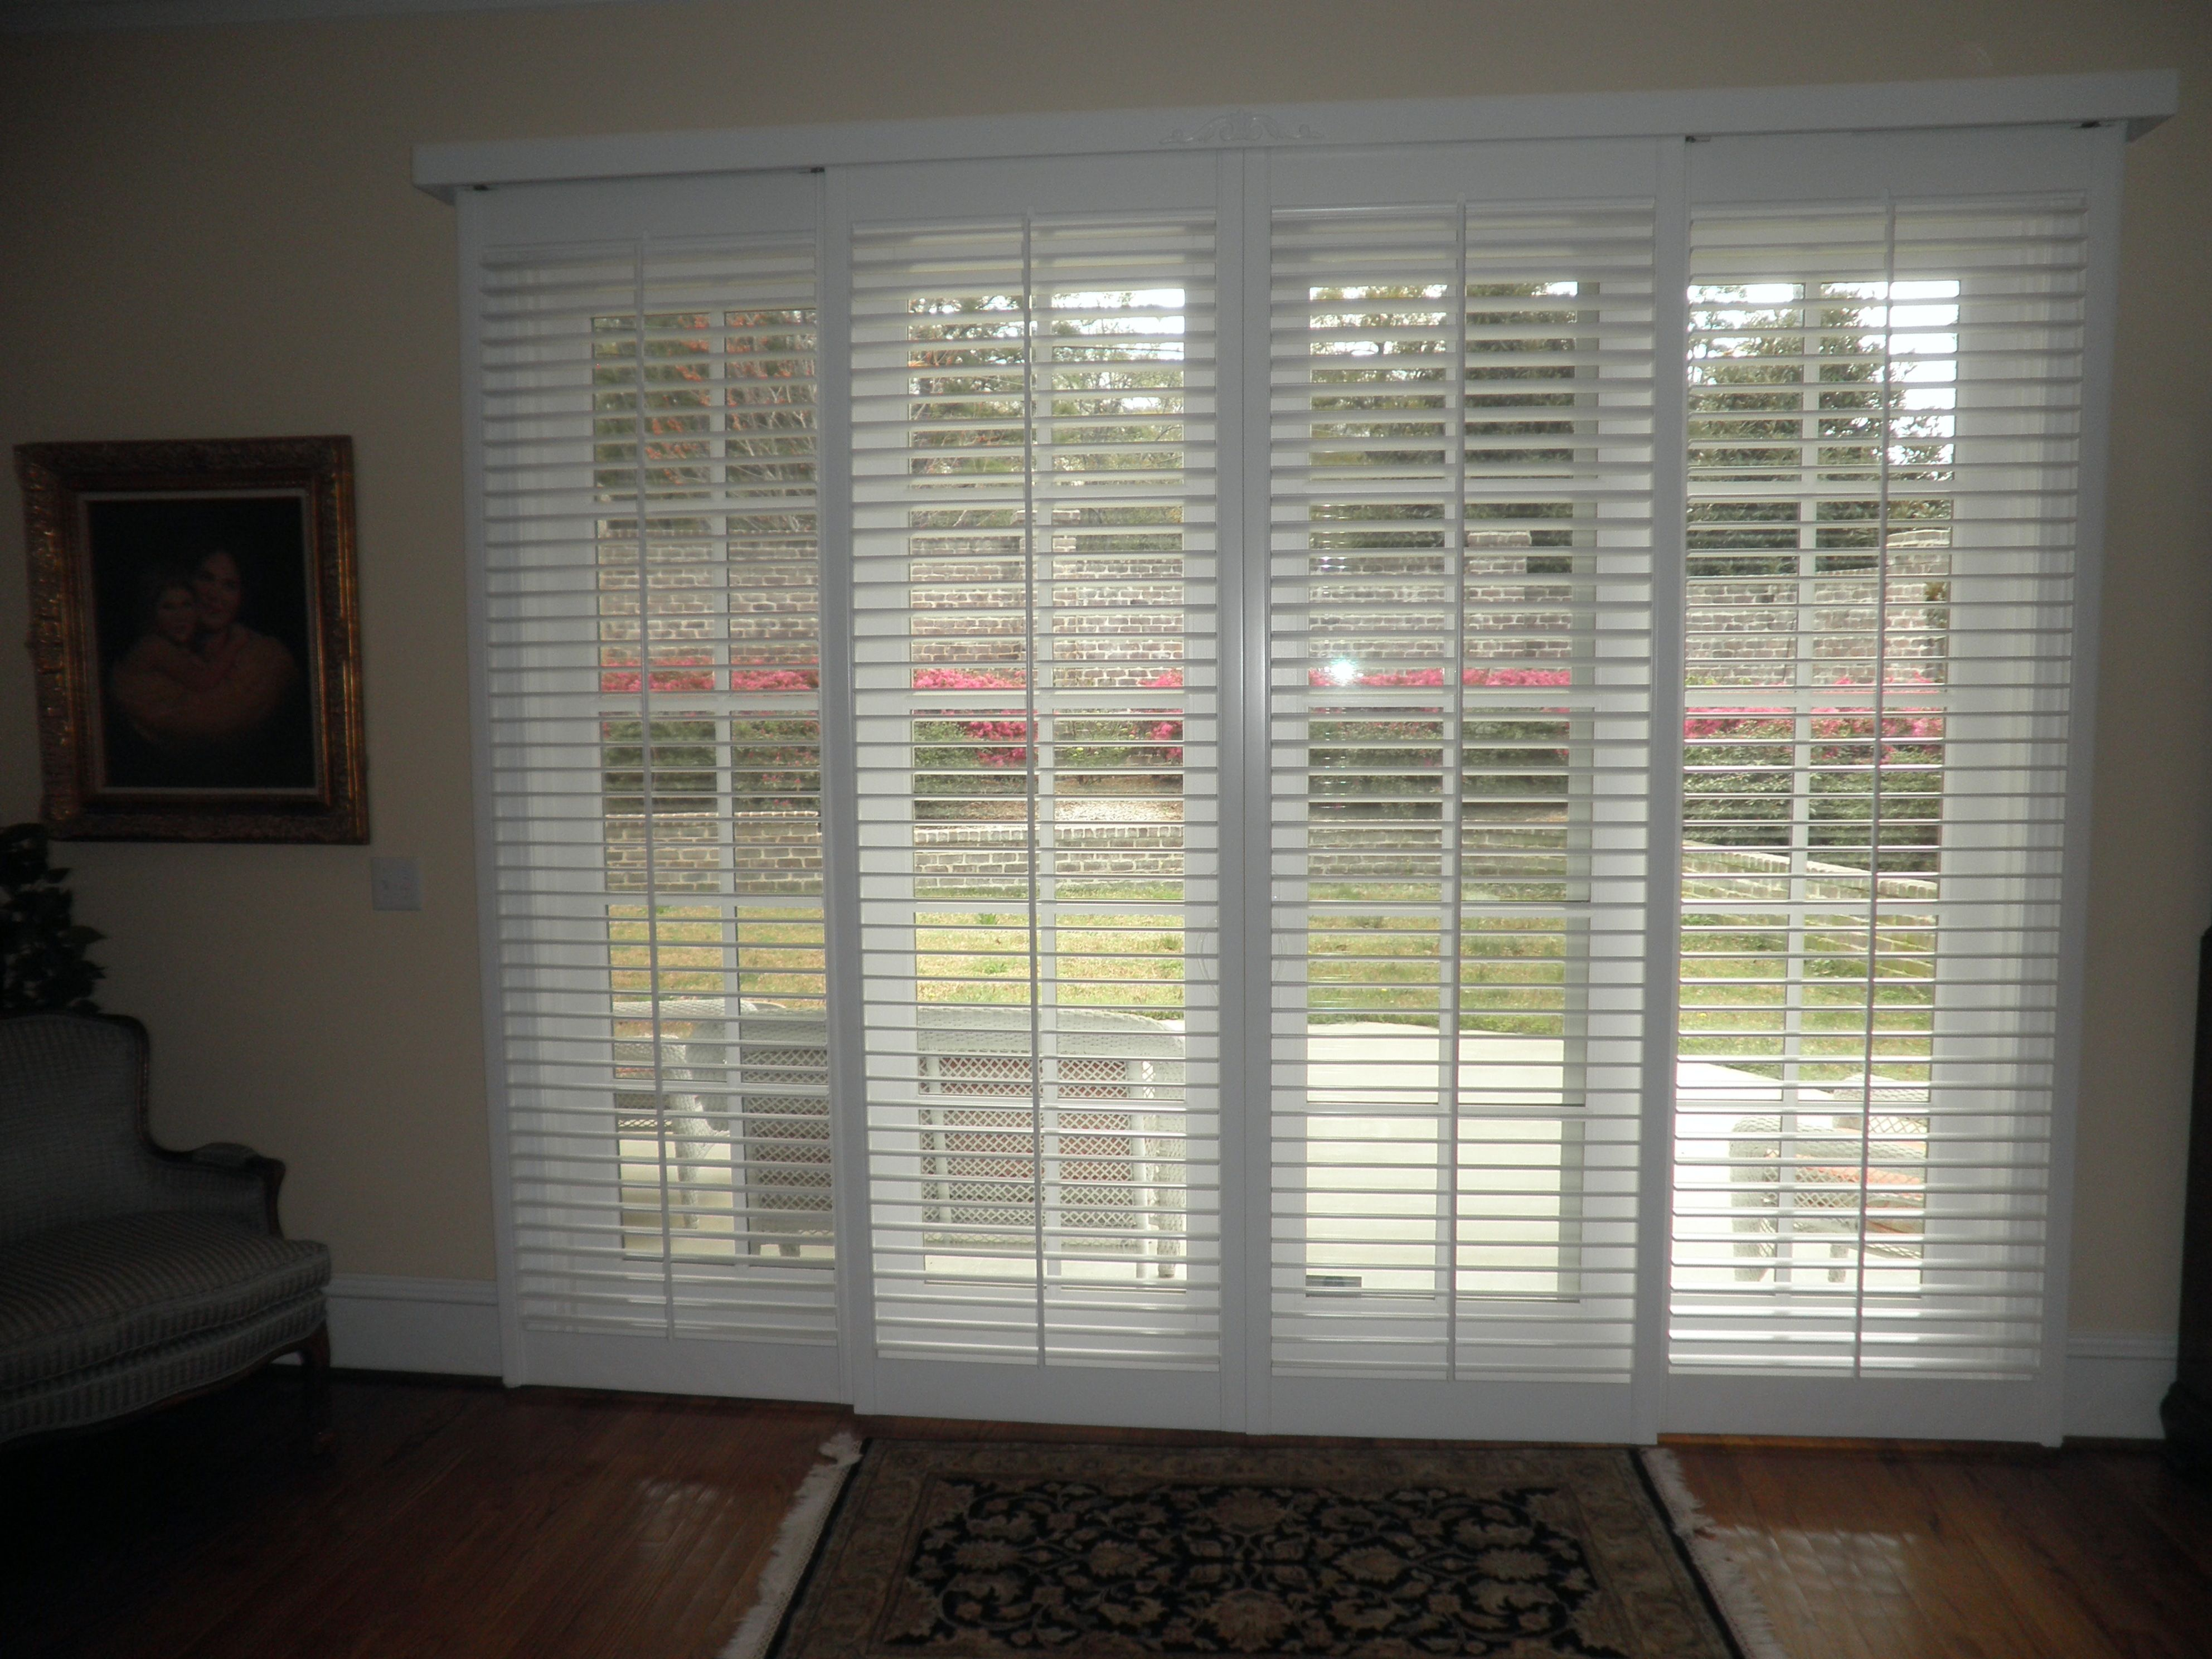 Sliding Wood Shutters For Patio Doors Among The Attributes That